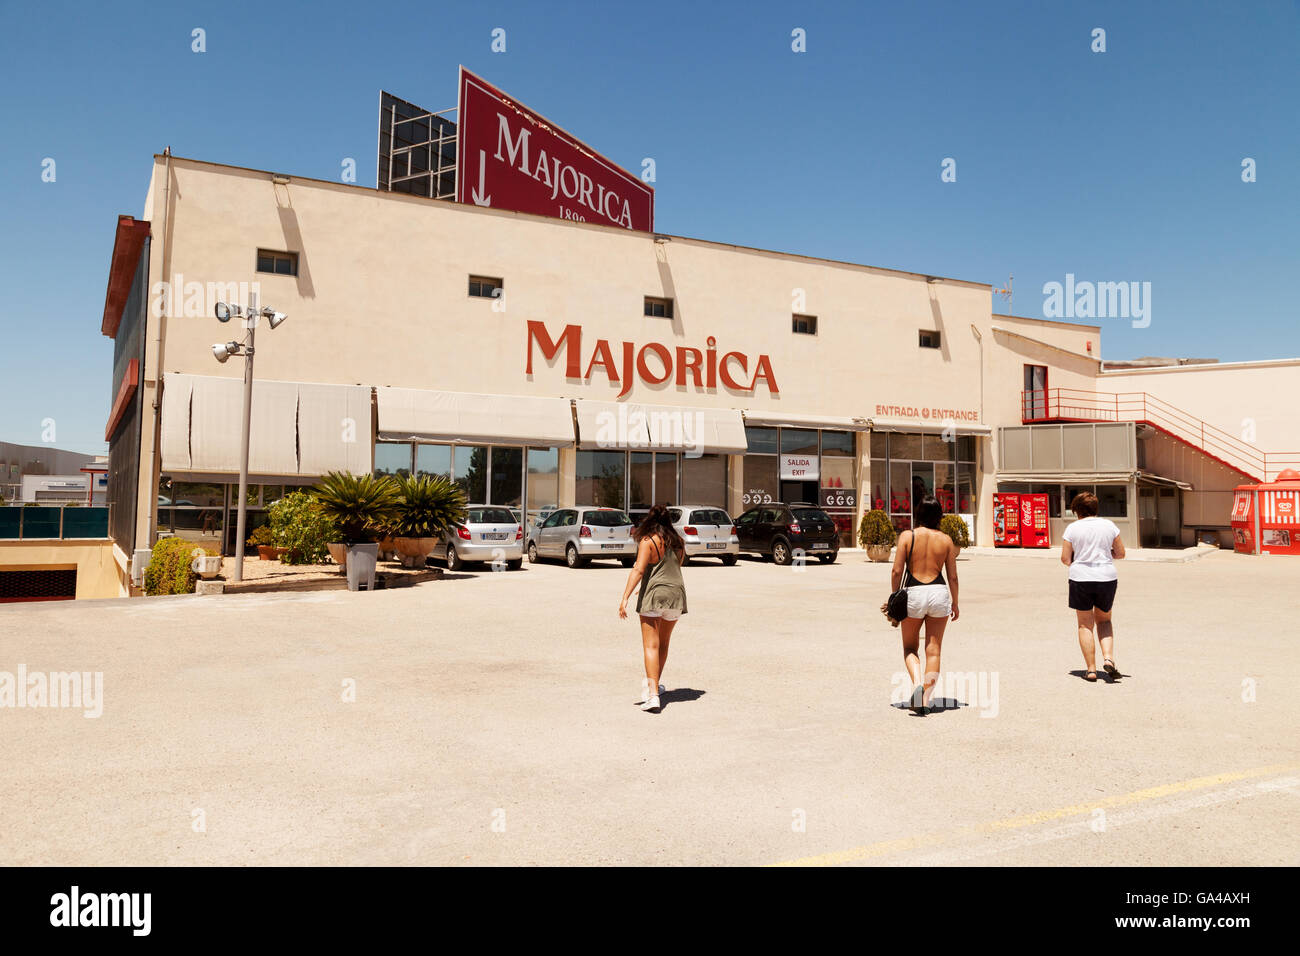 Manacor Shopping Center The Majorica Imitation Pearls Factory And Shop, Manacor